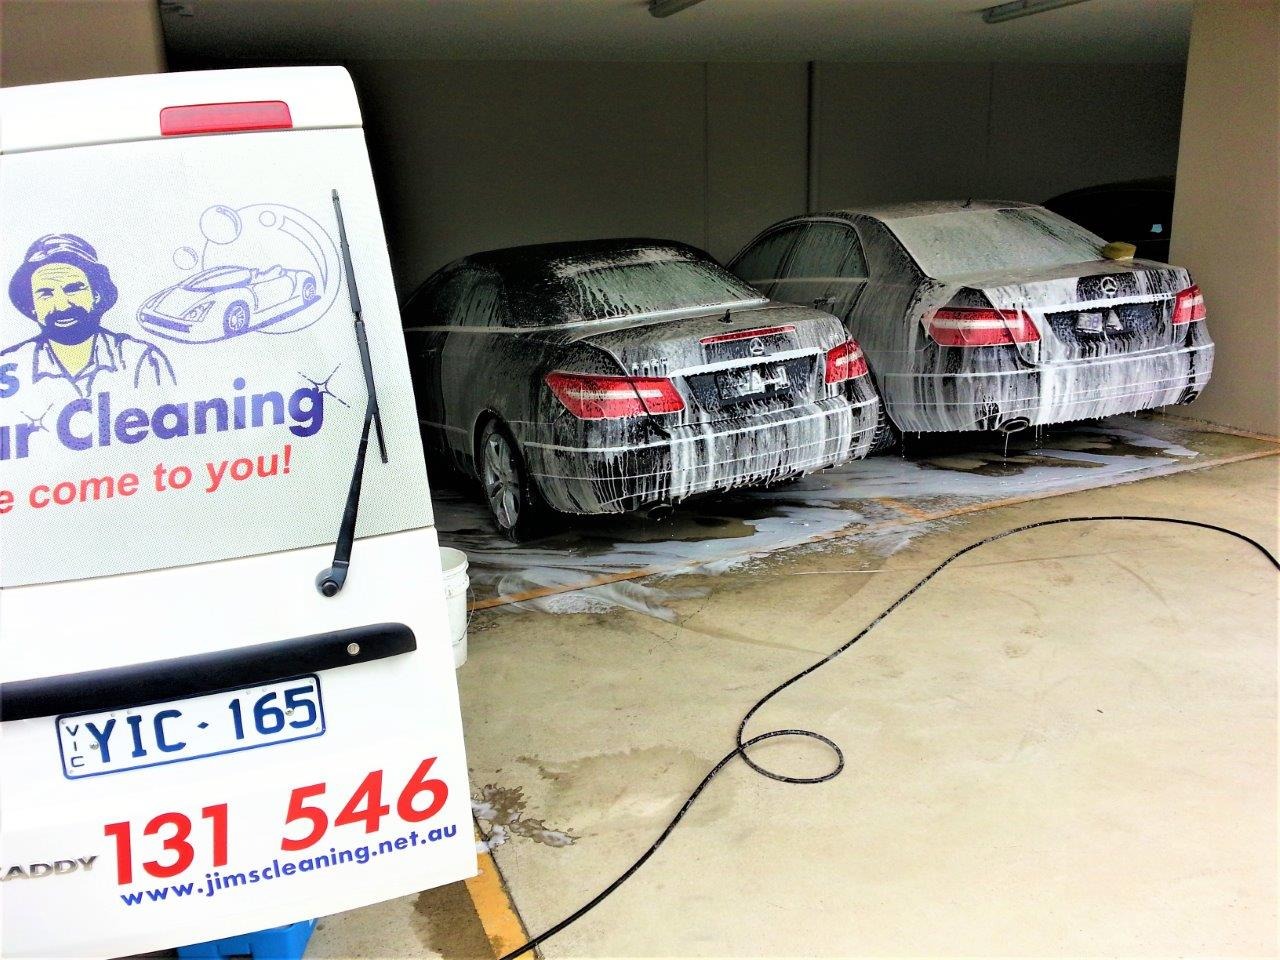 jims-car-cleaning-detailing-franchises-available-call-now-131-546-7